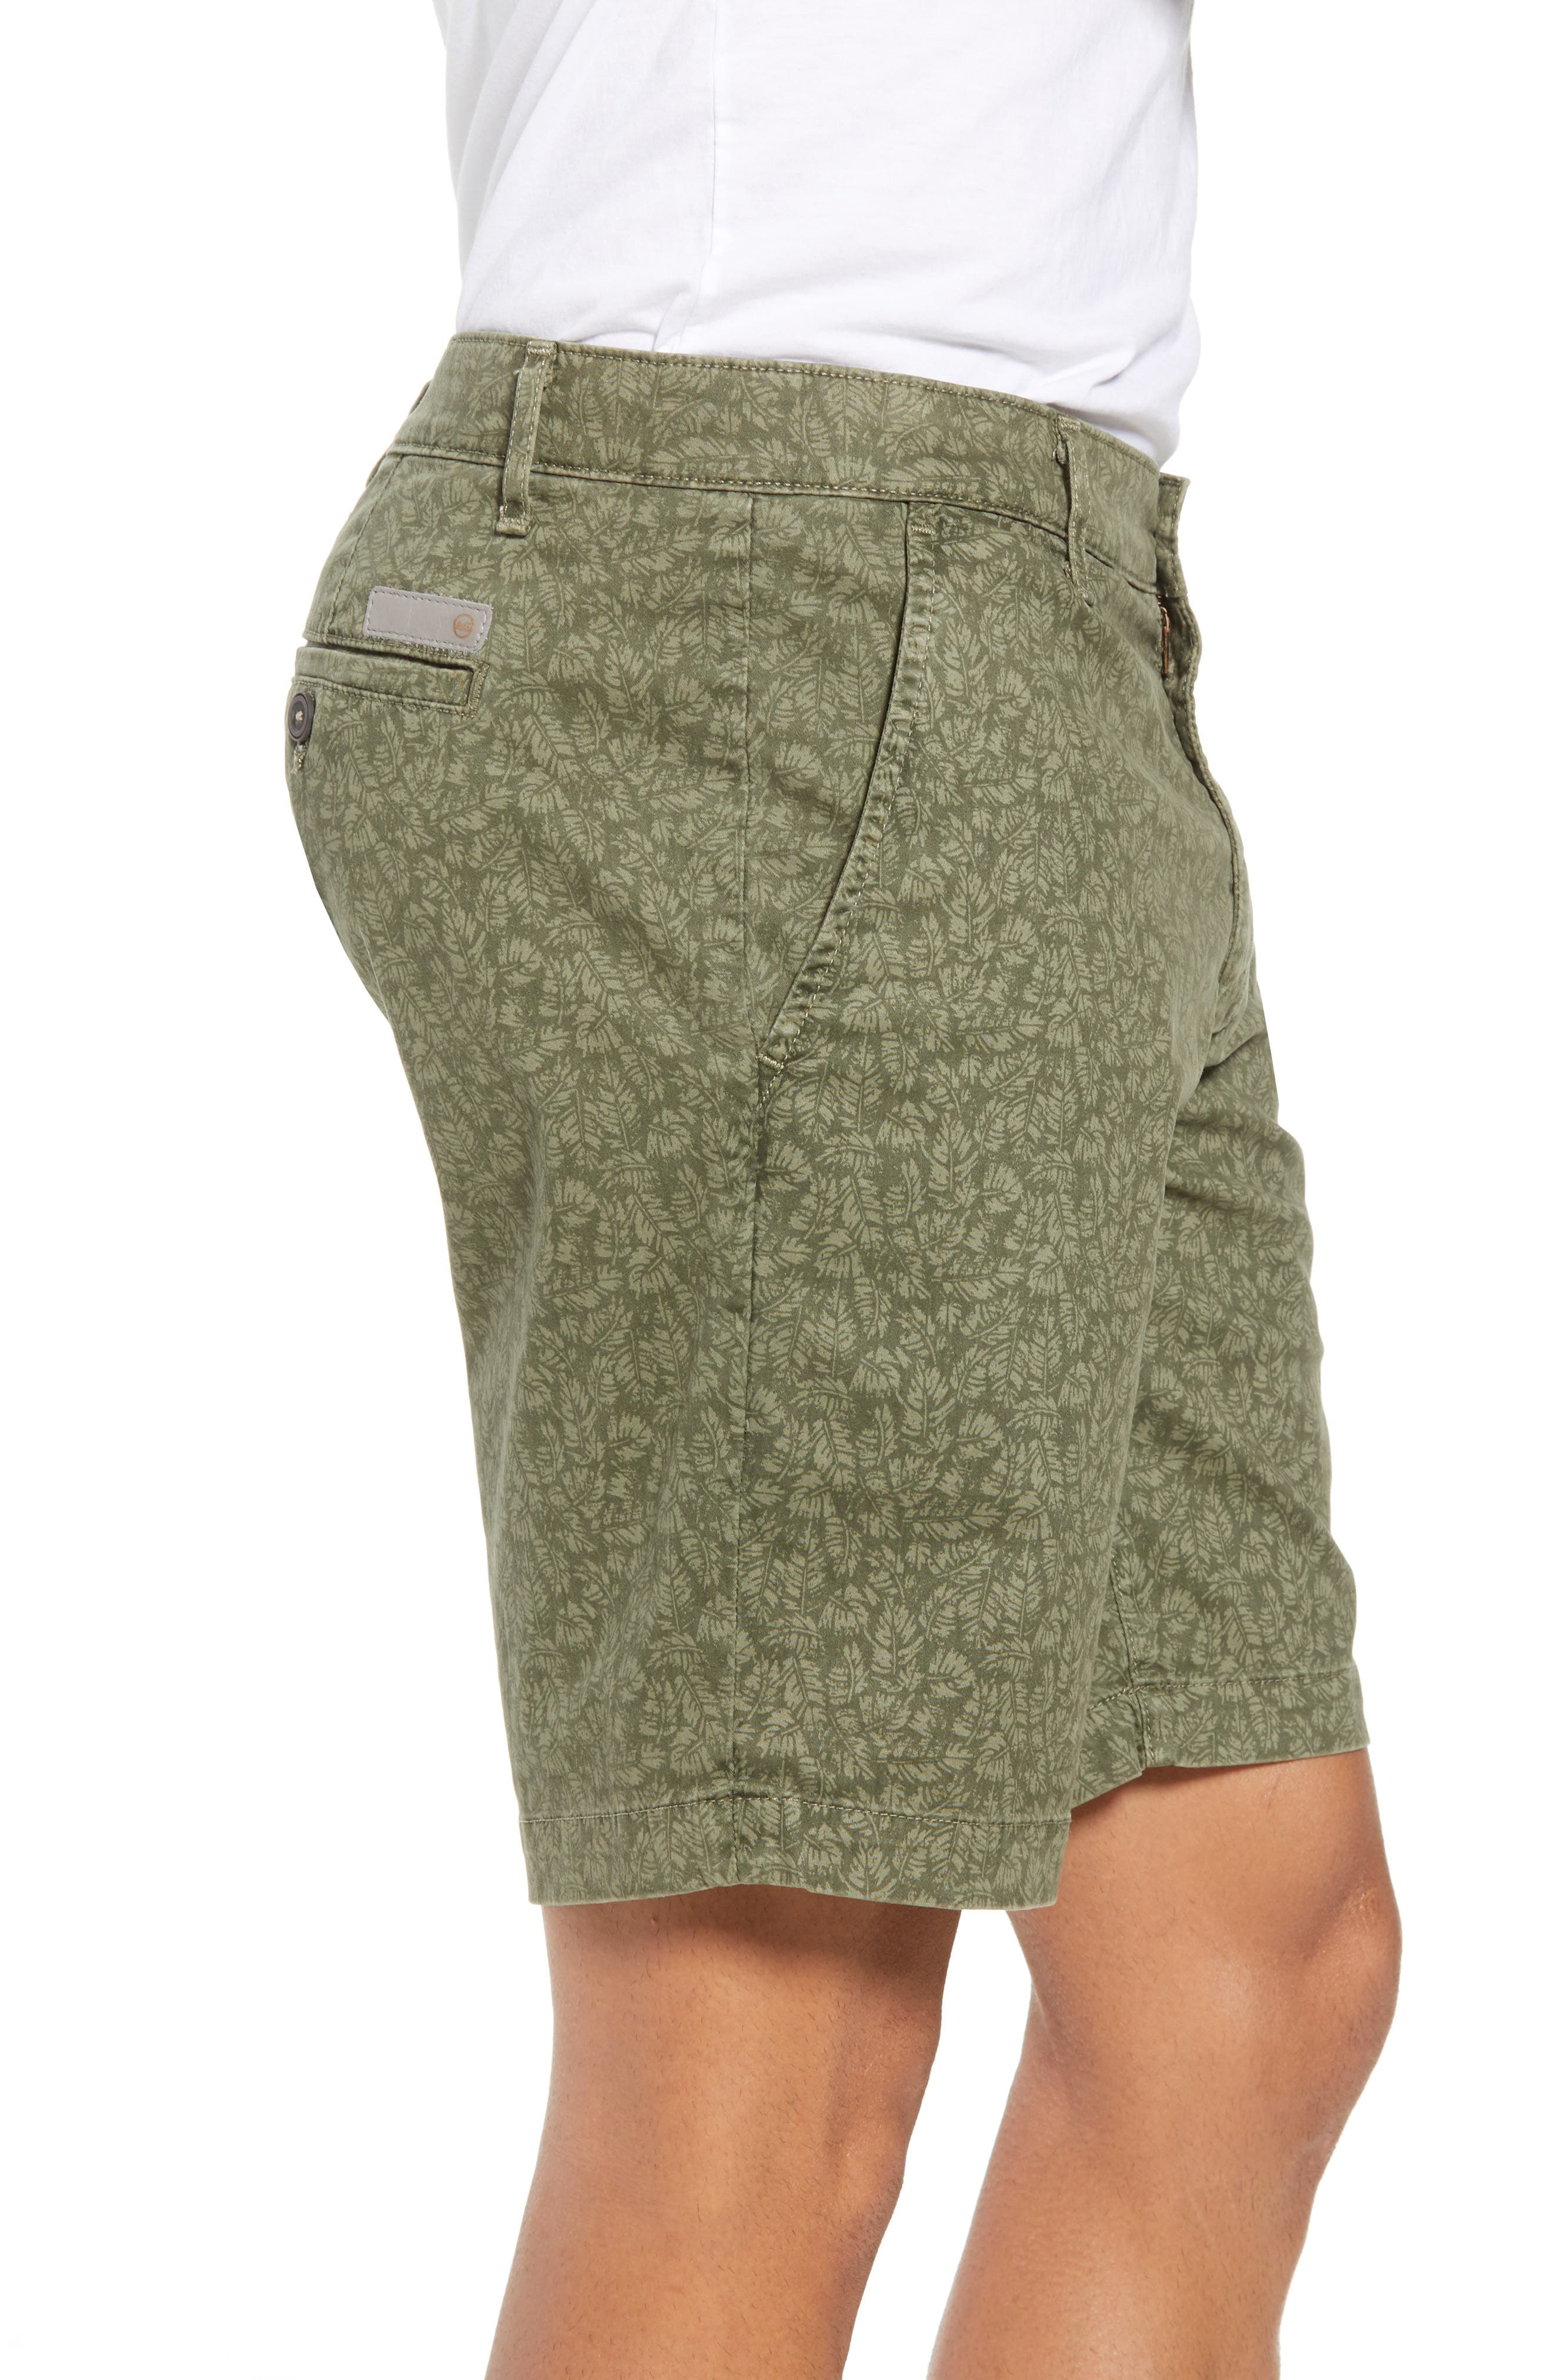 Lotas Slim Fit Stretch Cotton Shorts,                             Alternate thumbnail 3, color,                             Sulfur Dry Cypress